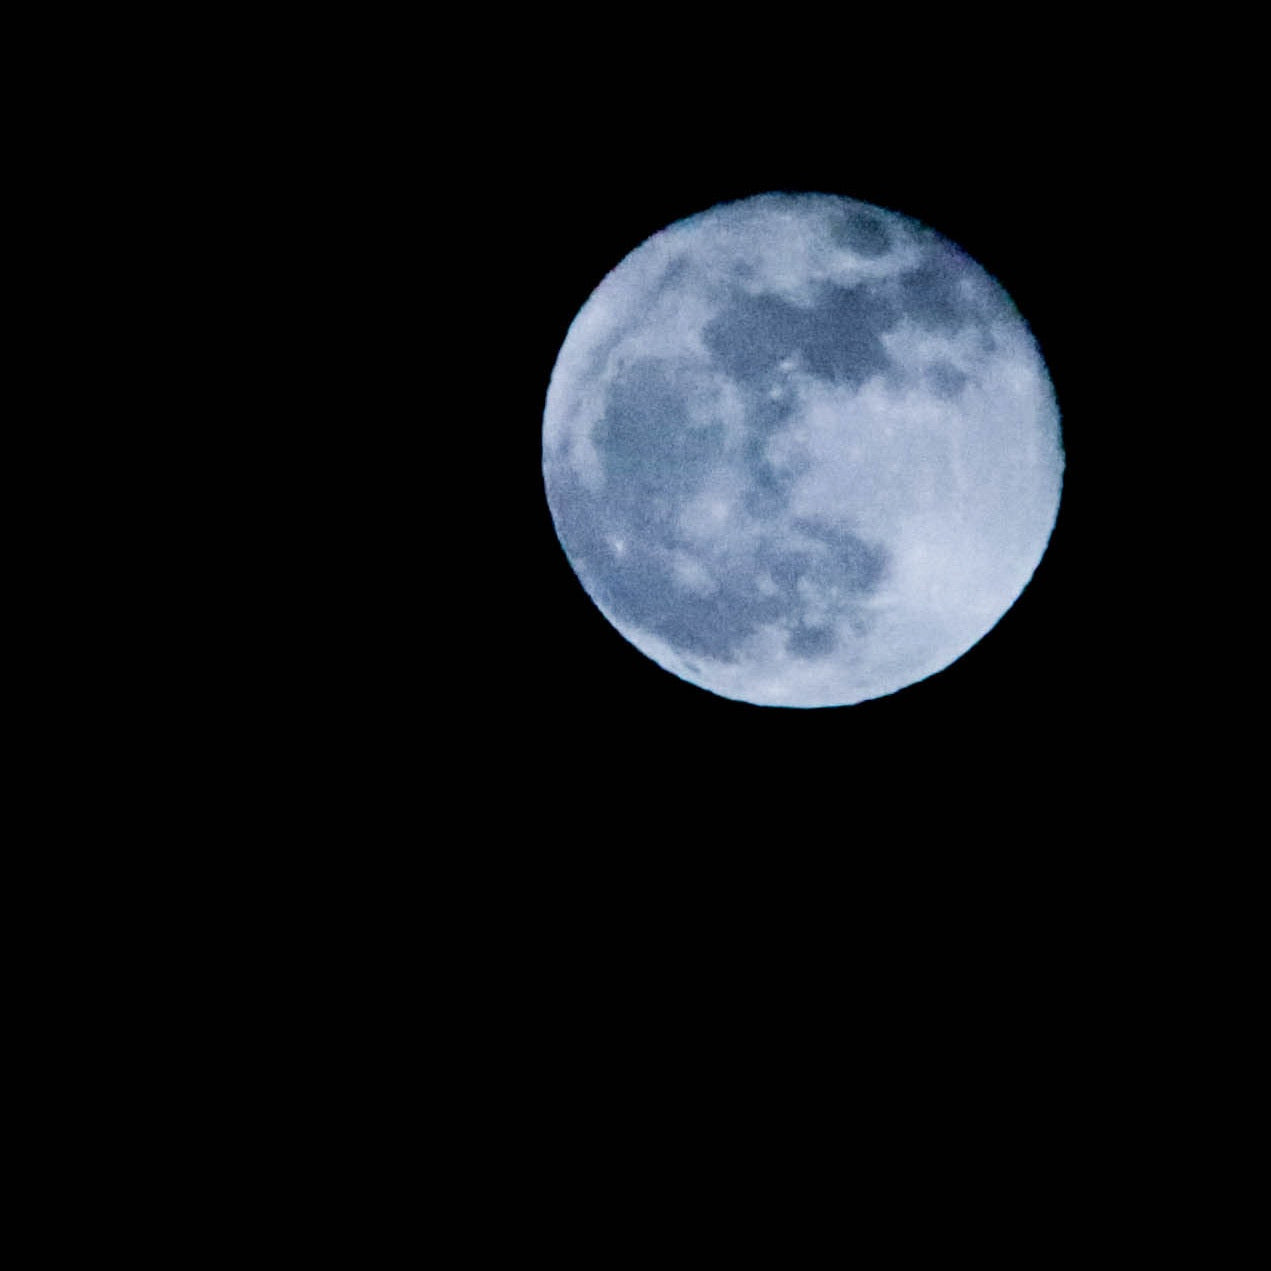 Blue Moon with Black Background